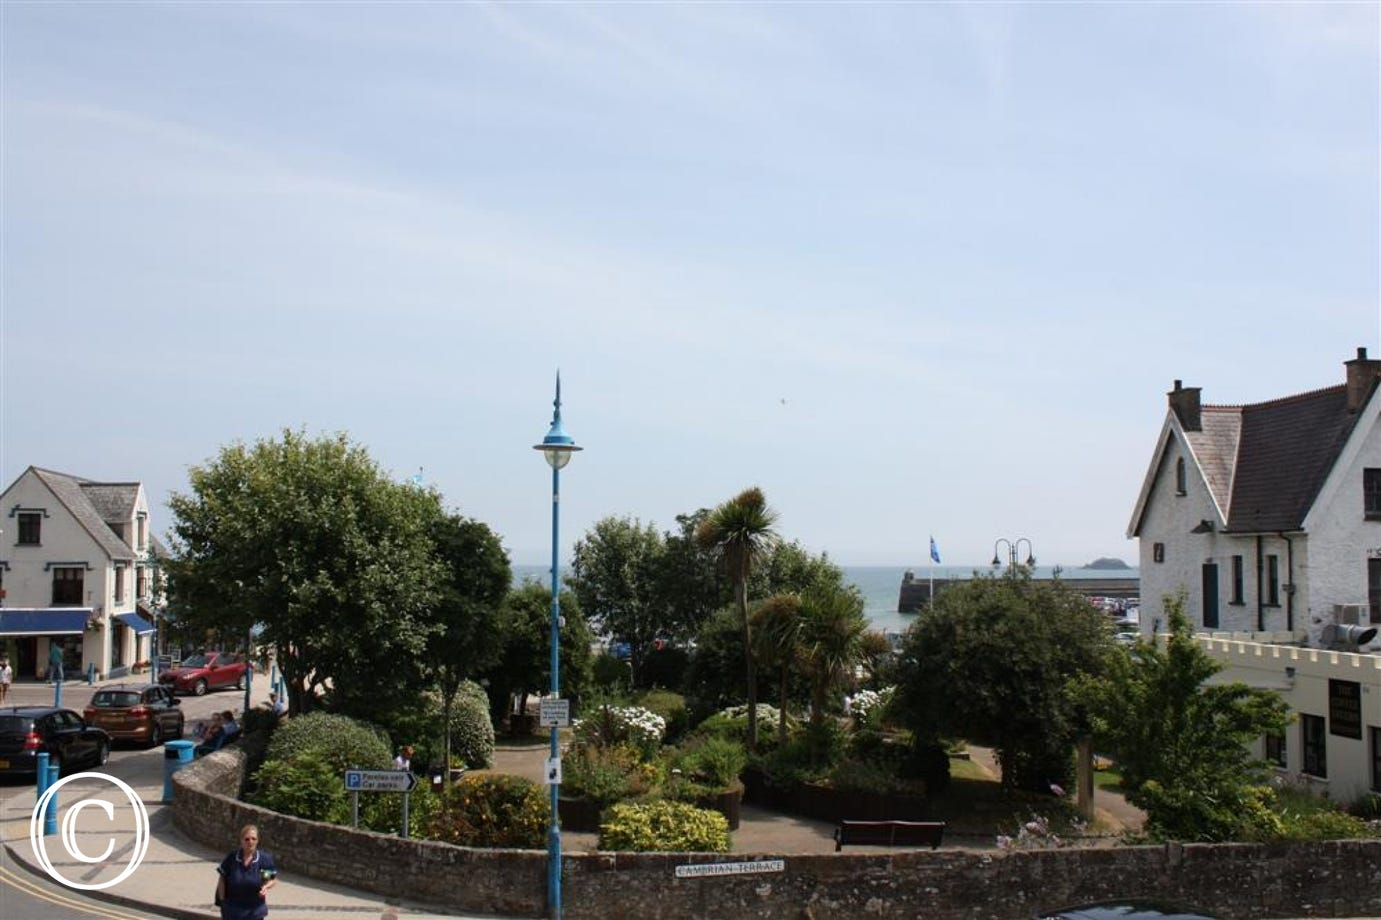 Super views across the Sensory Garden and of Saundersfoot bay and harbour